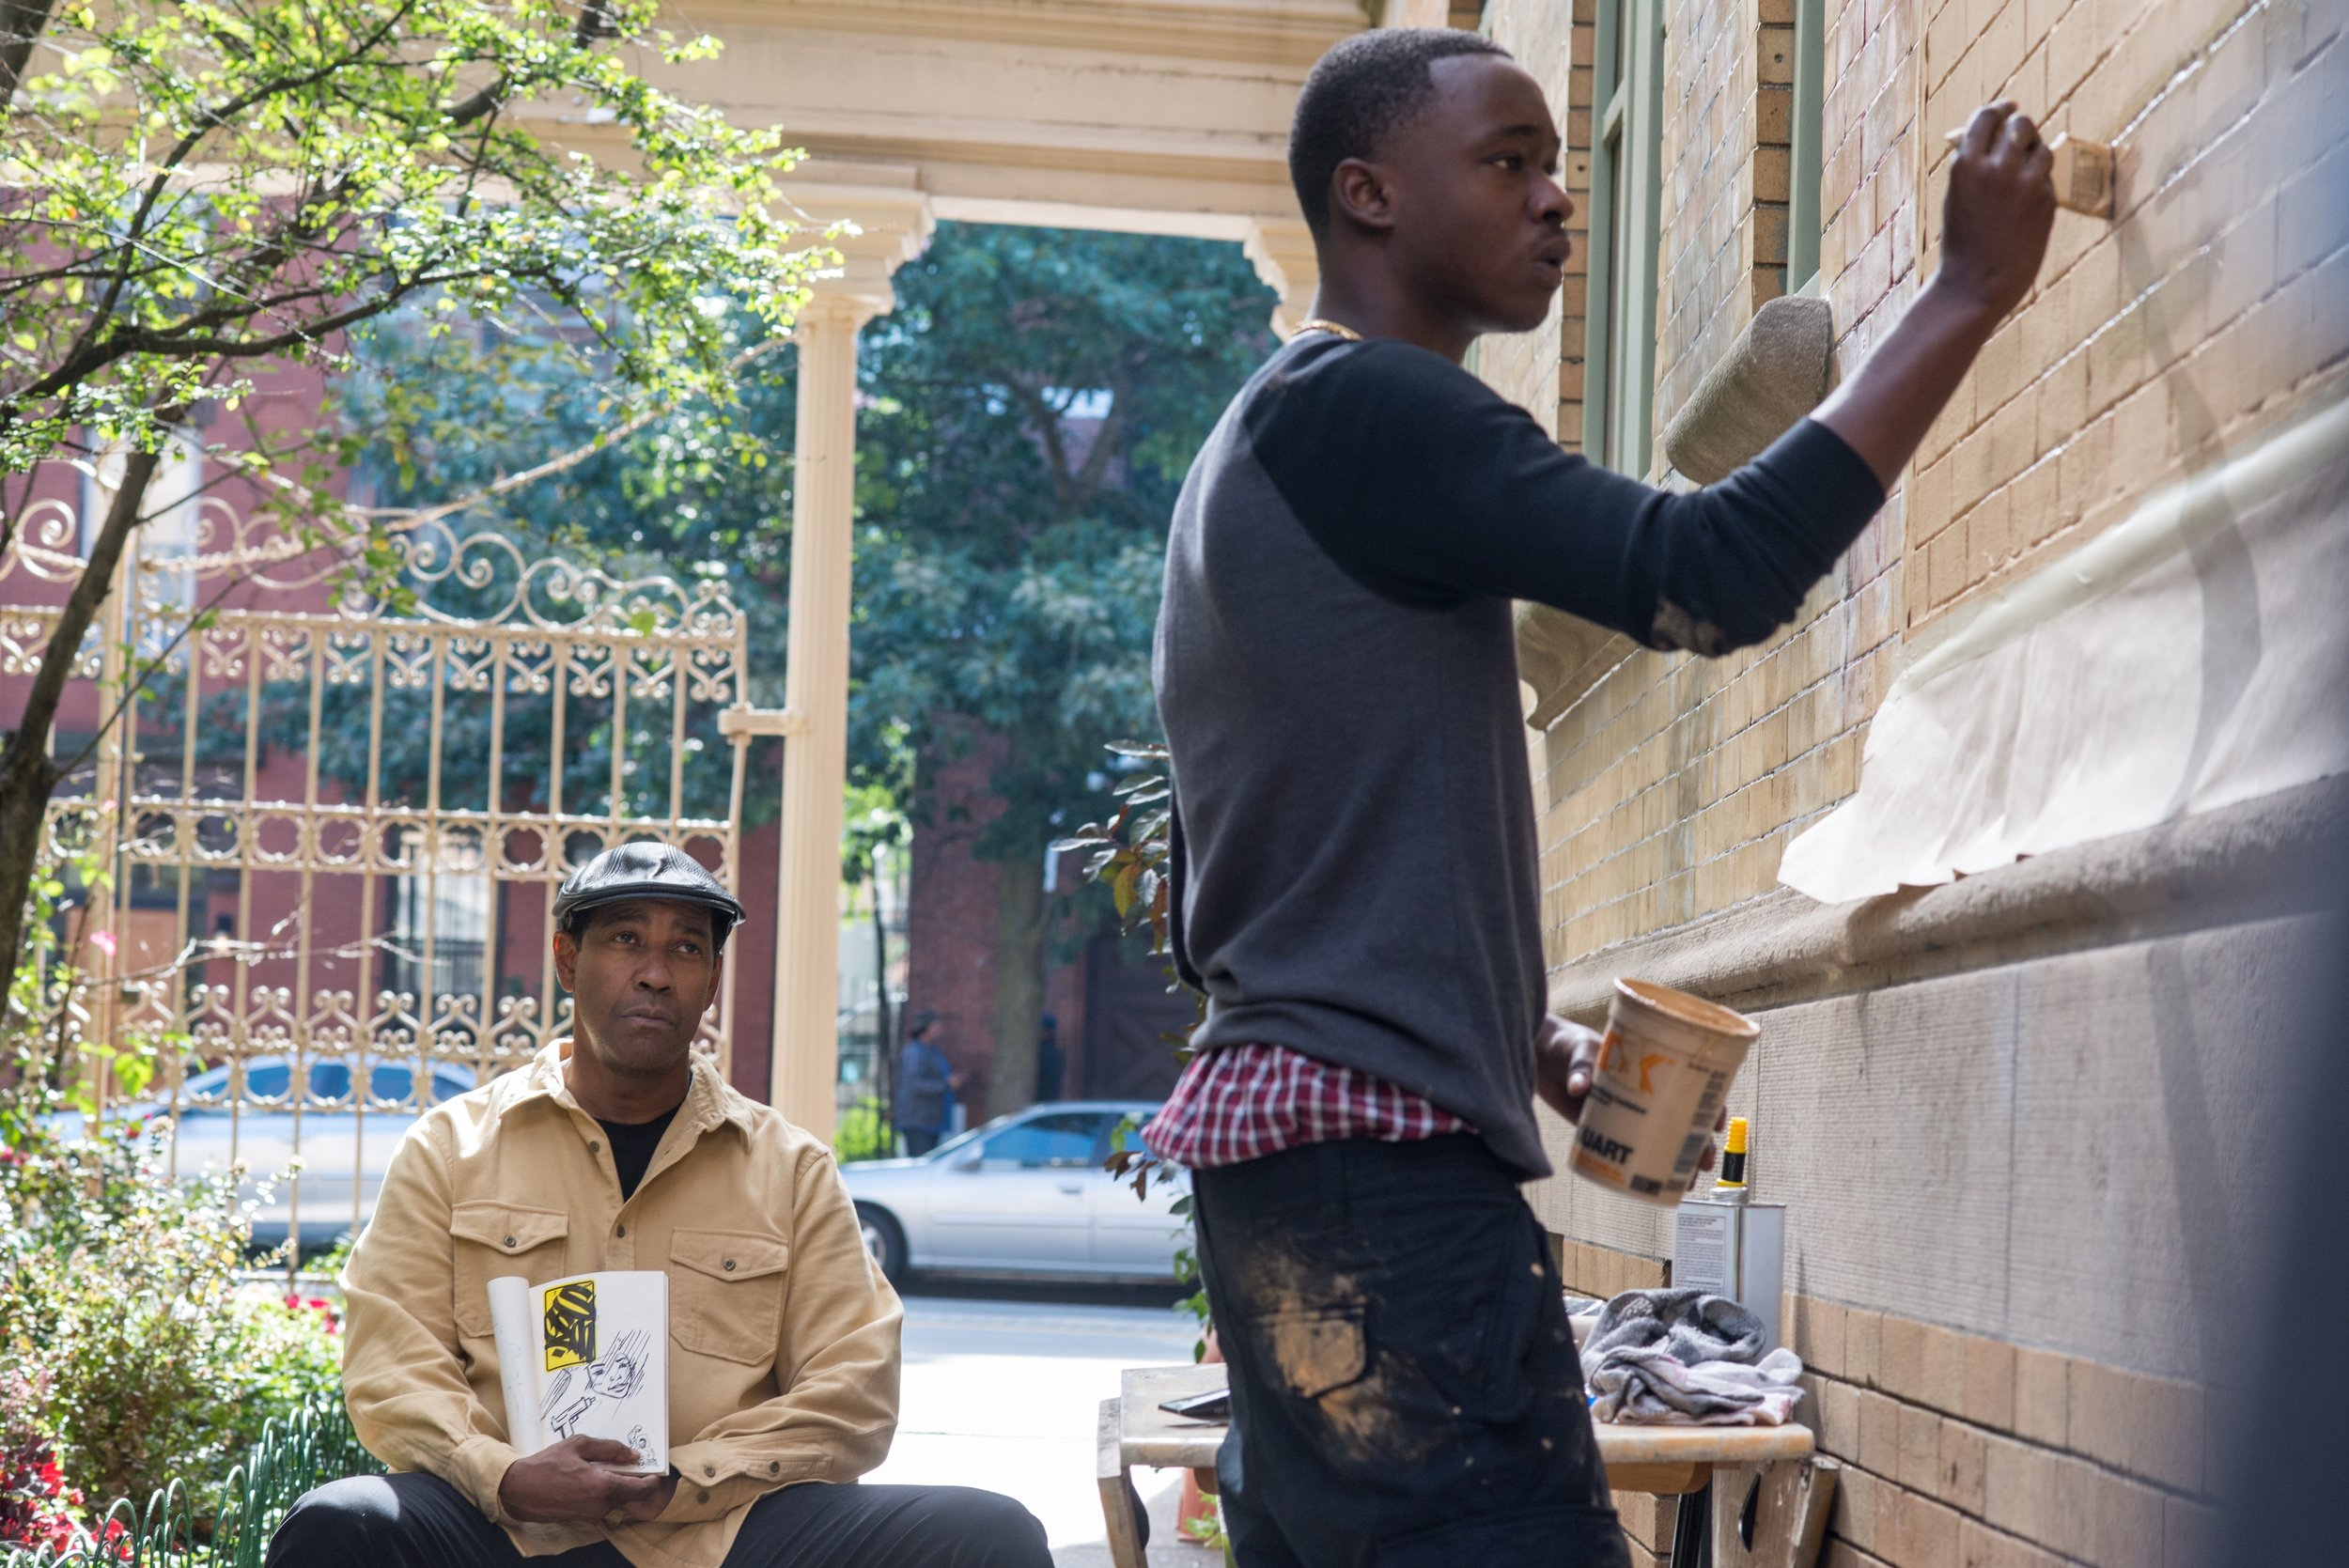 Denzel Washington and Ashton Sanders have a nice rapport in a bloody action movie.